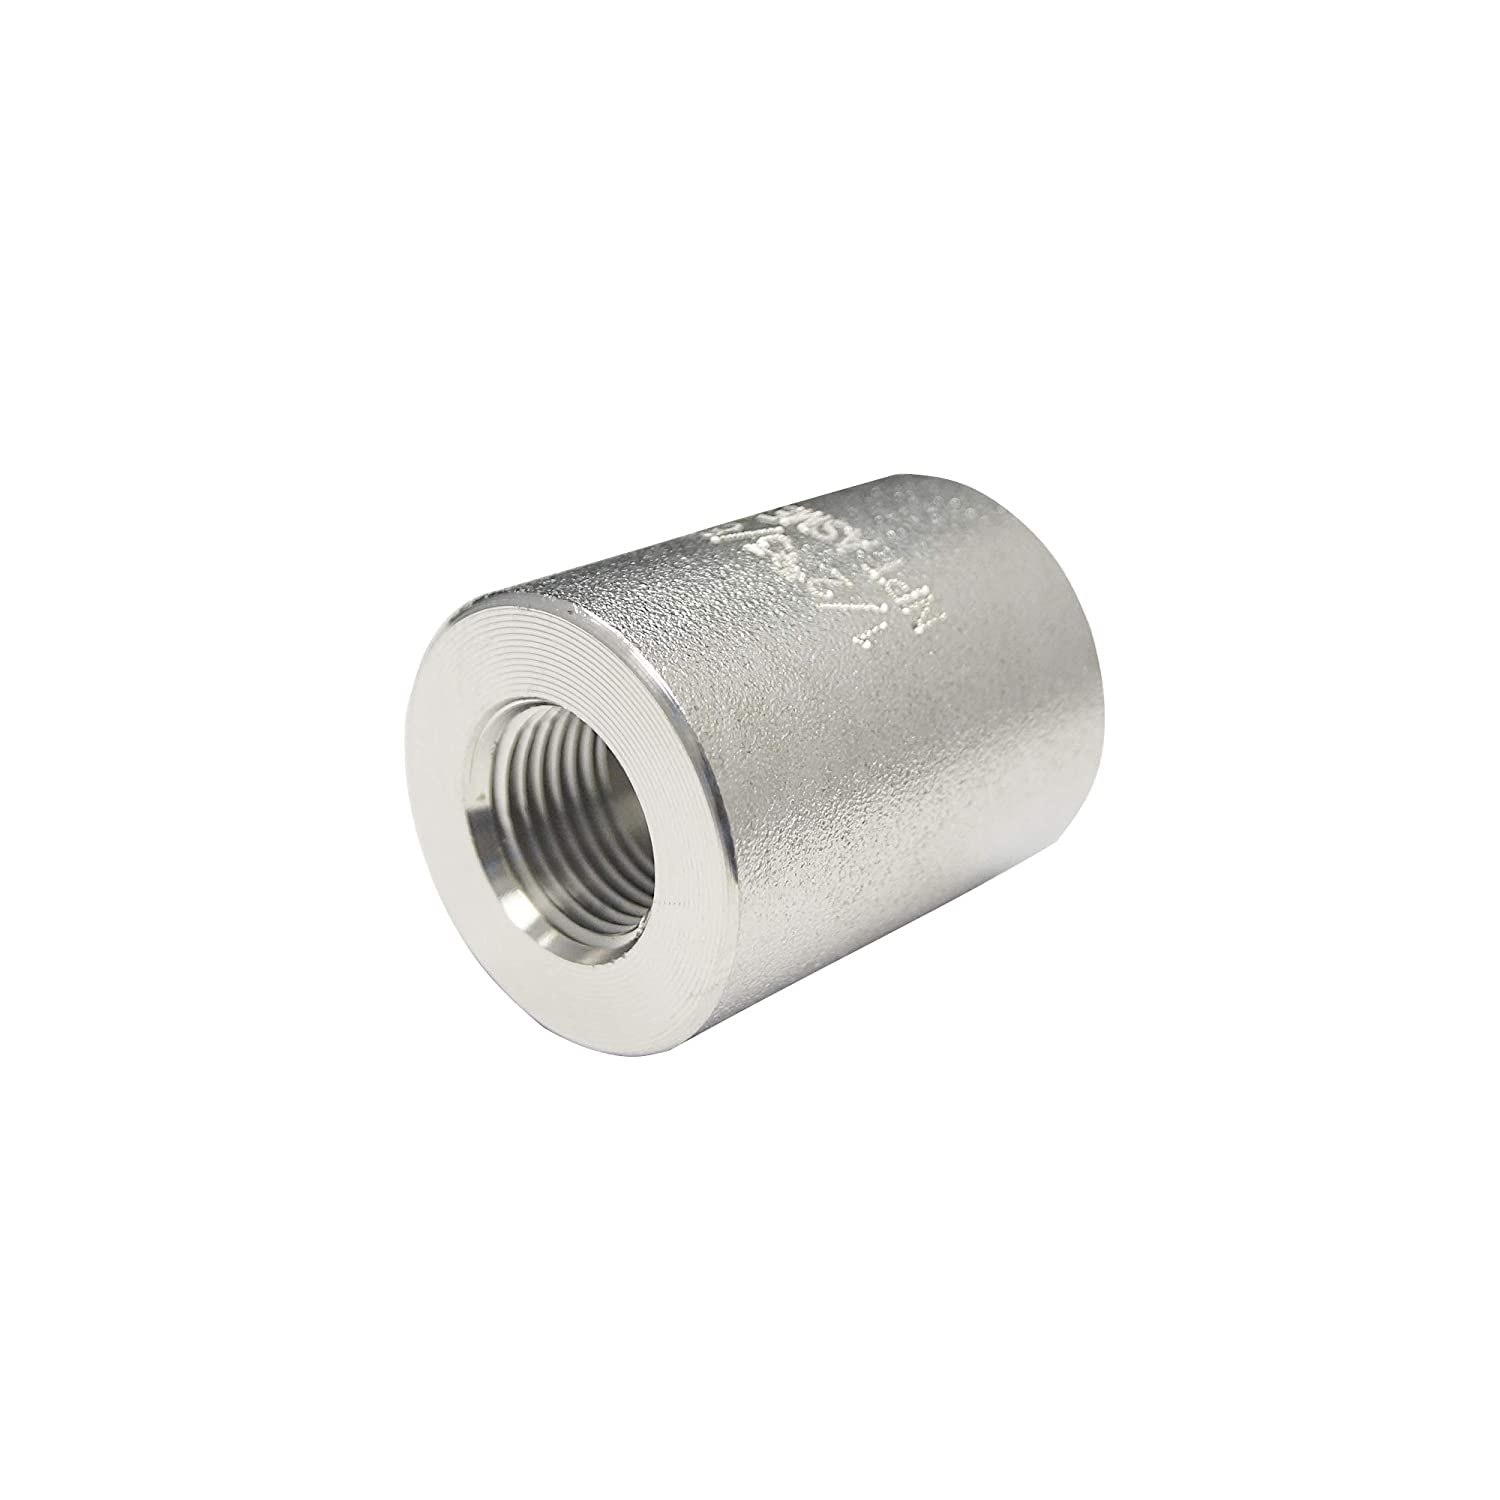 Stainless Steel 316 Forged Pipe Fitting, Reduced Full Coupling, 1 NPT Female x 1/4 NPT Female, 6000 PSI